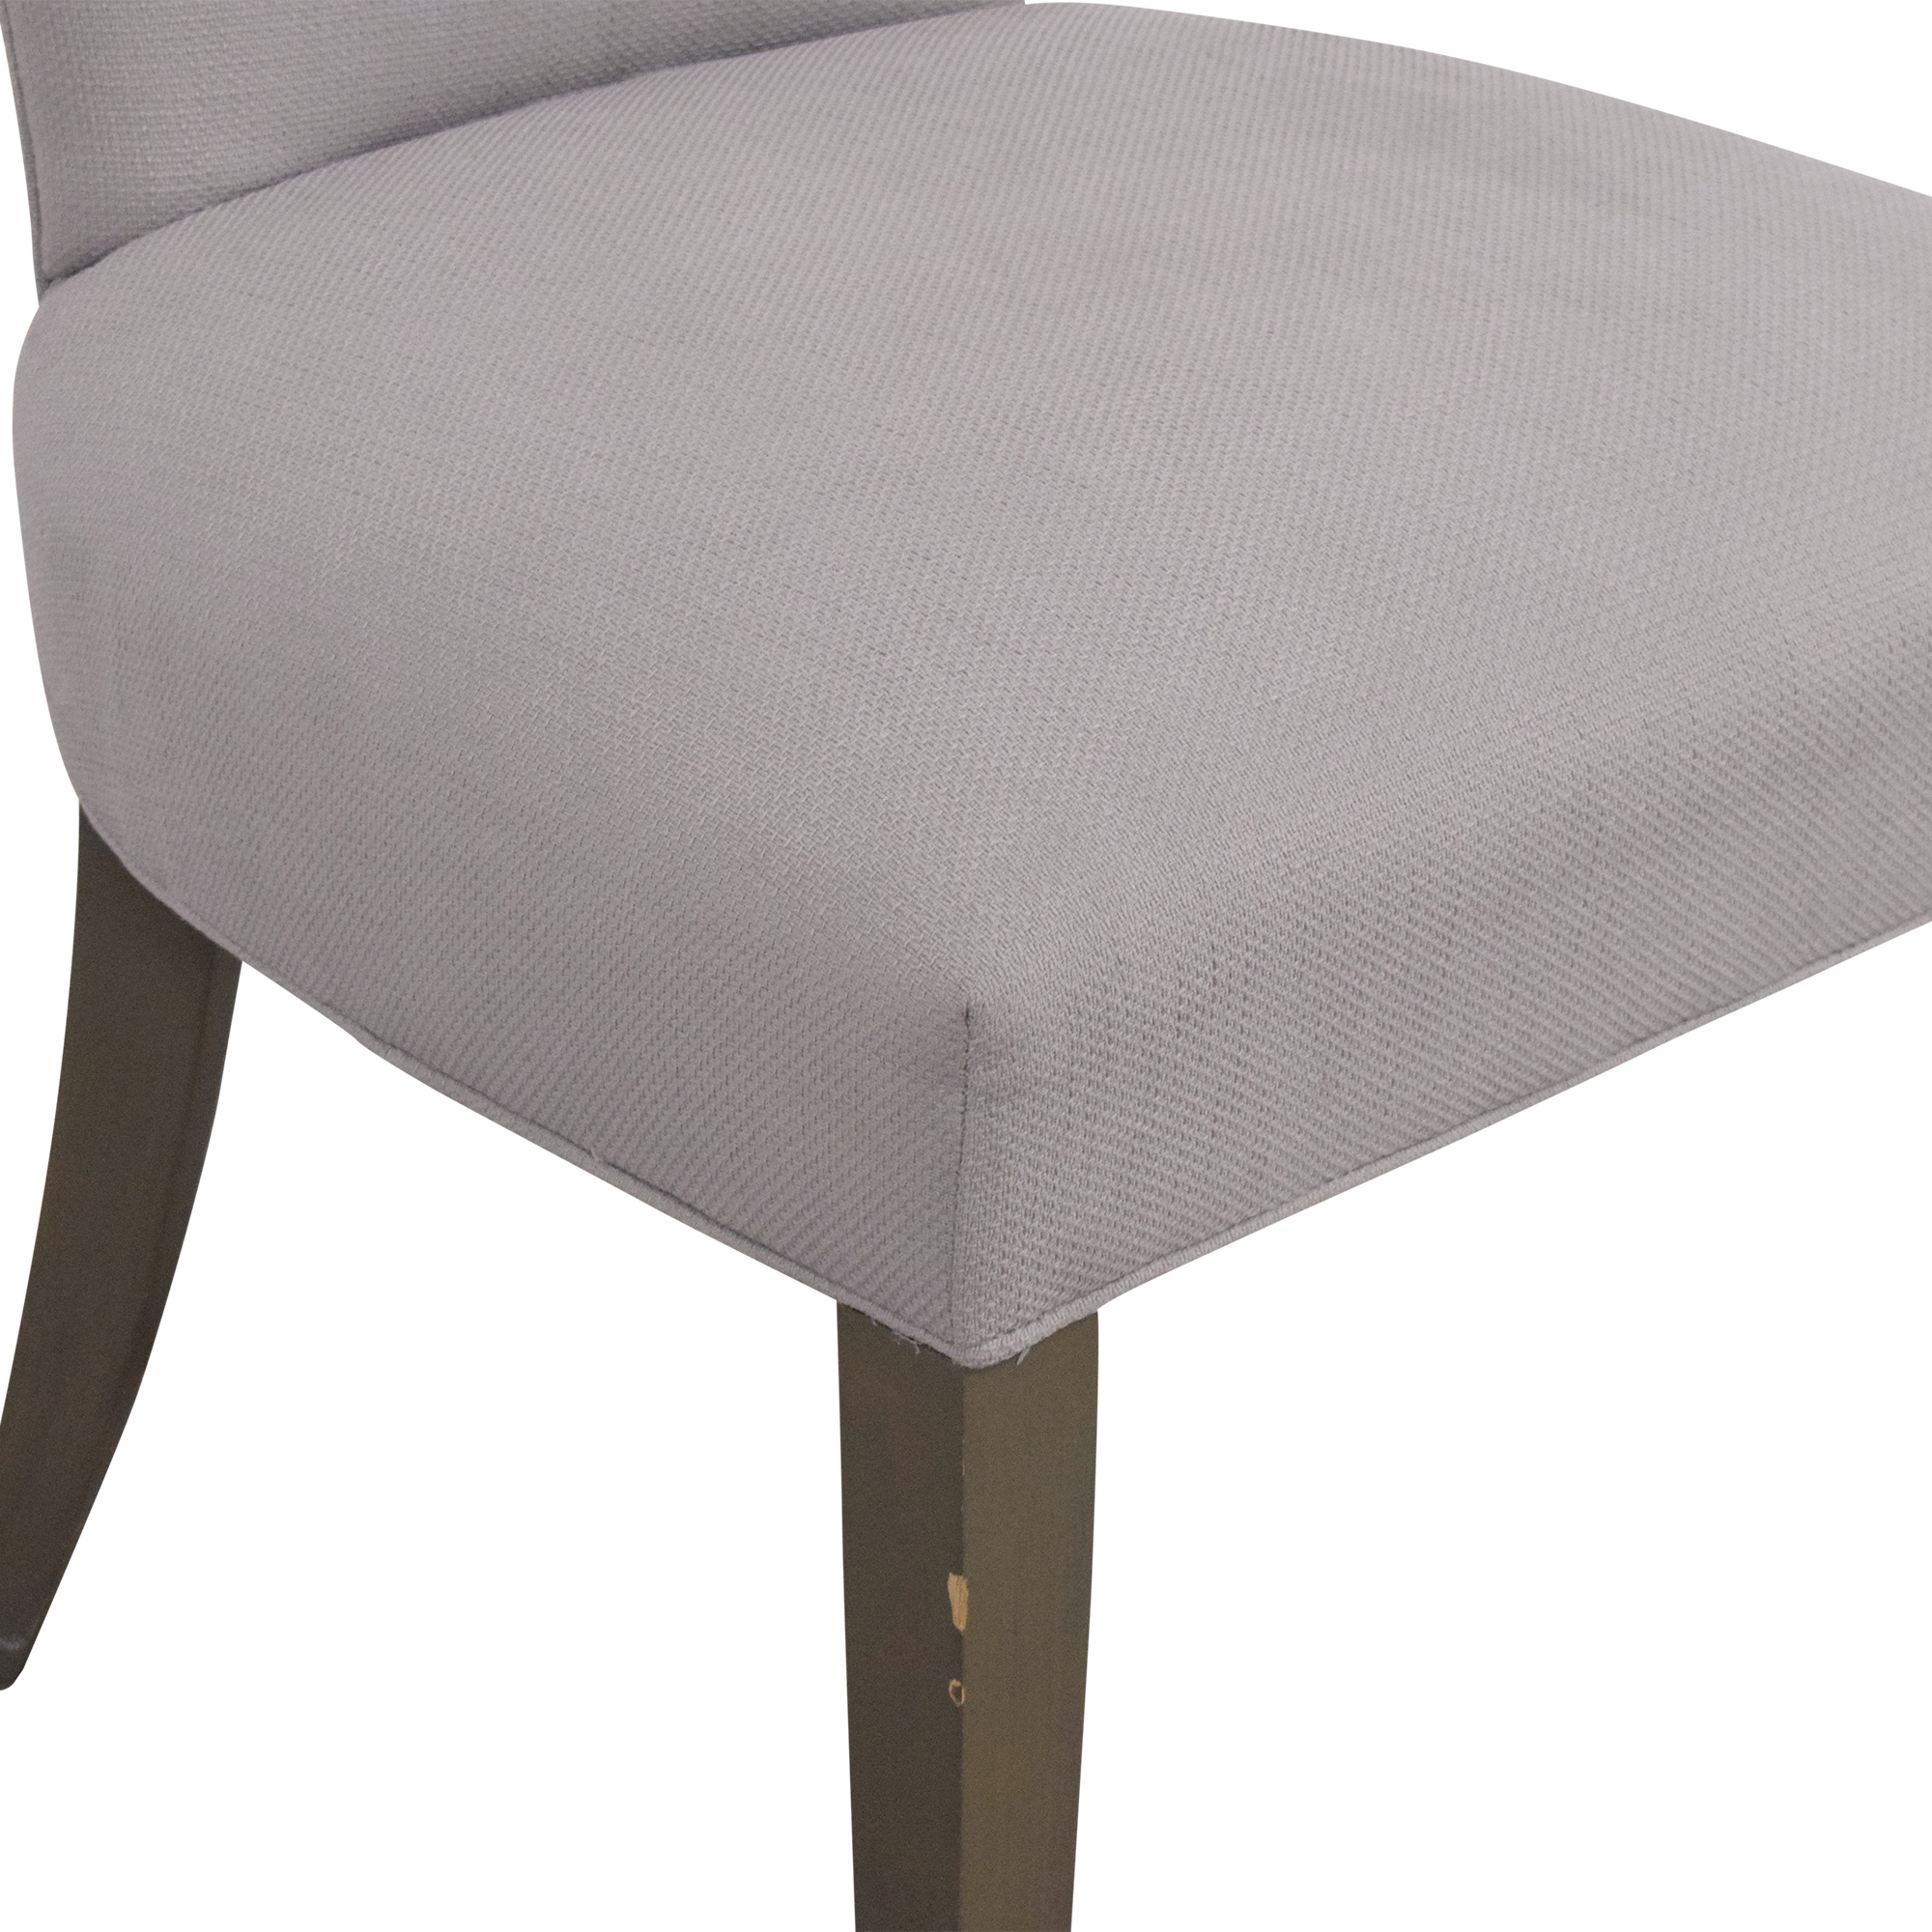 Crate & Barrel Crate & Barrel Sasha Upholstered Dining Side Chair Dining Chairs